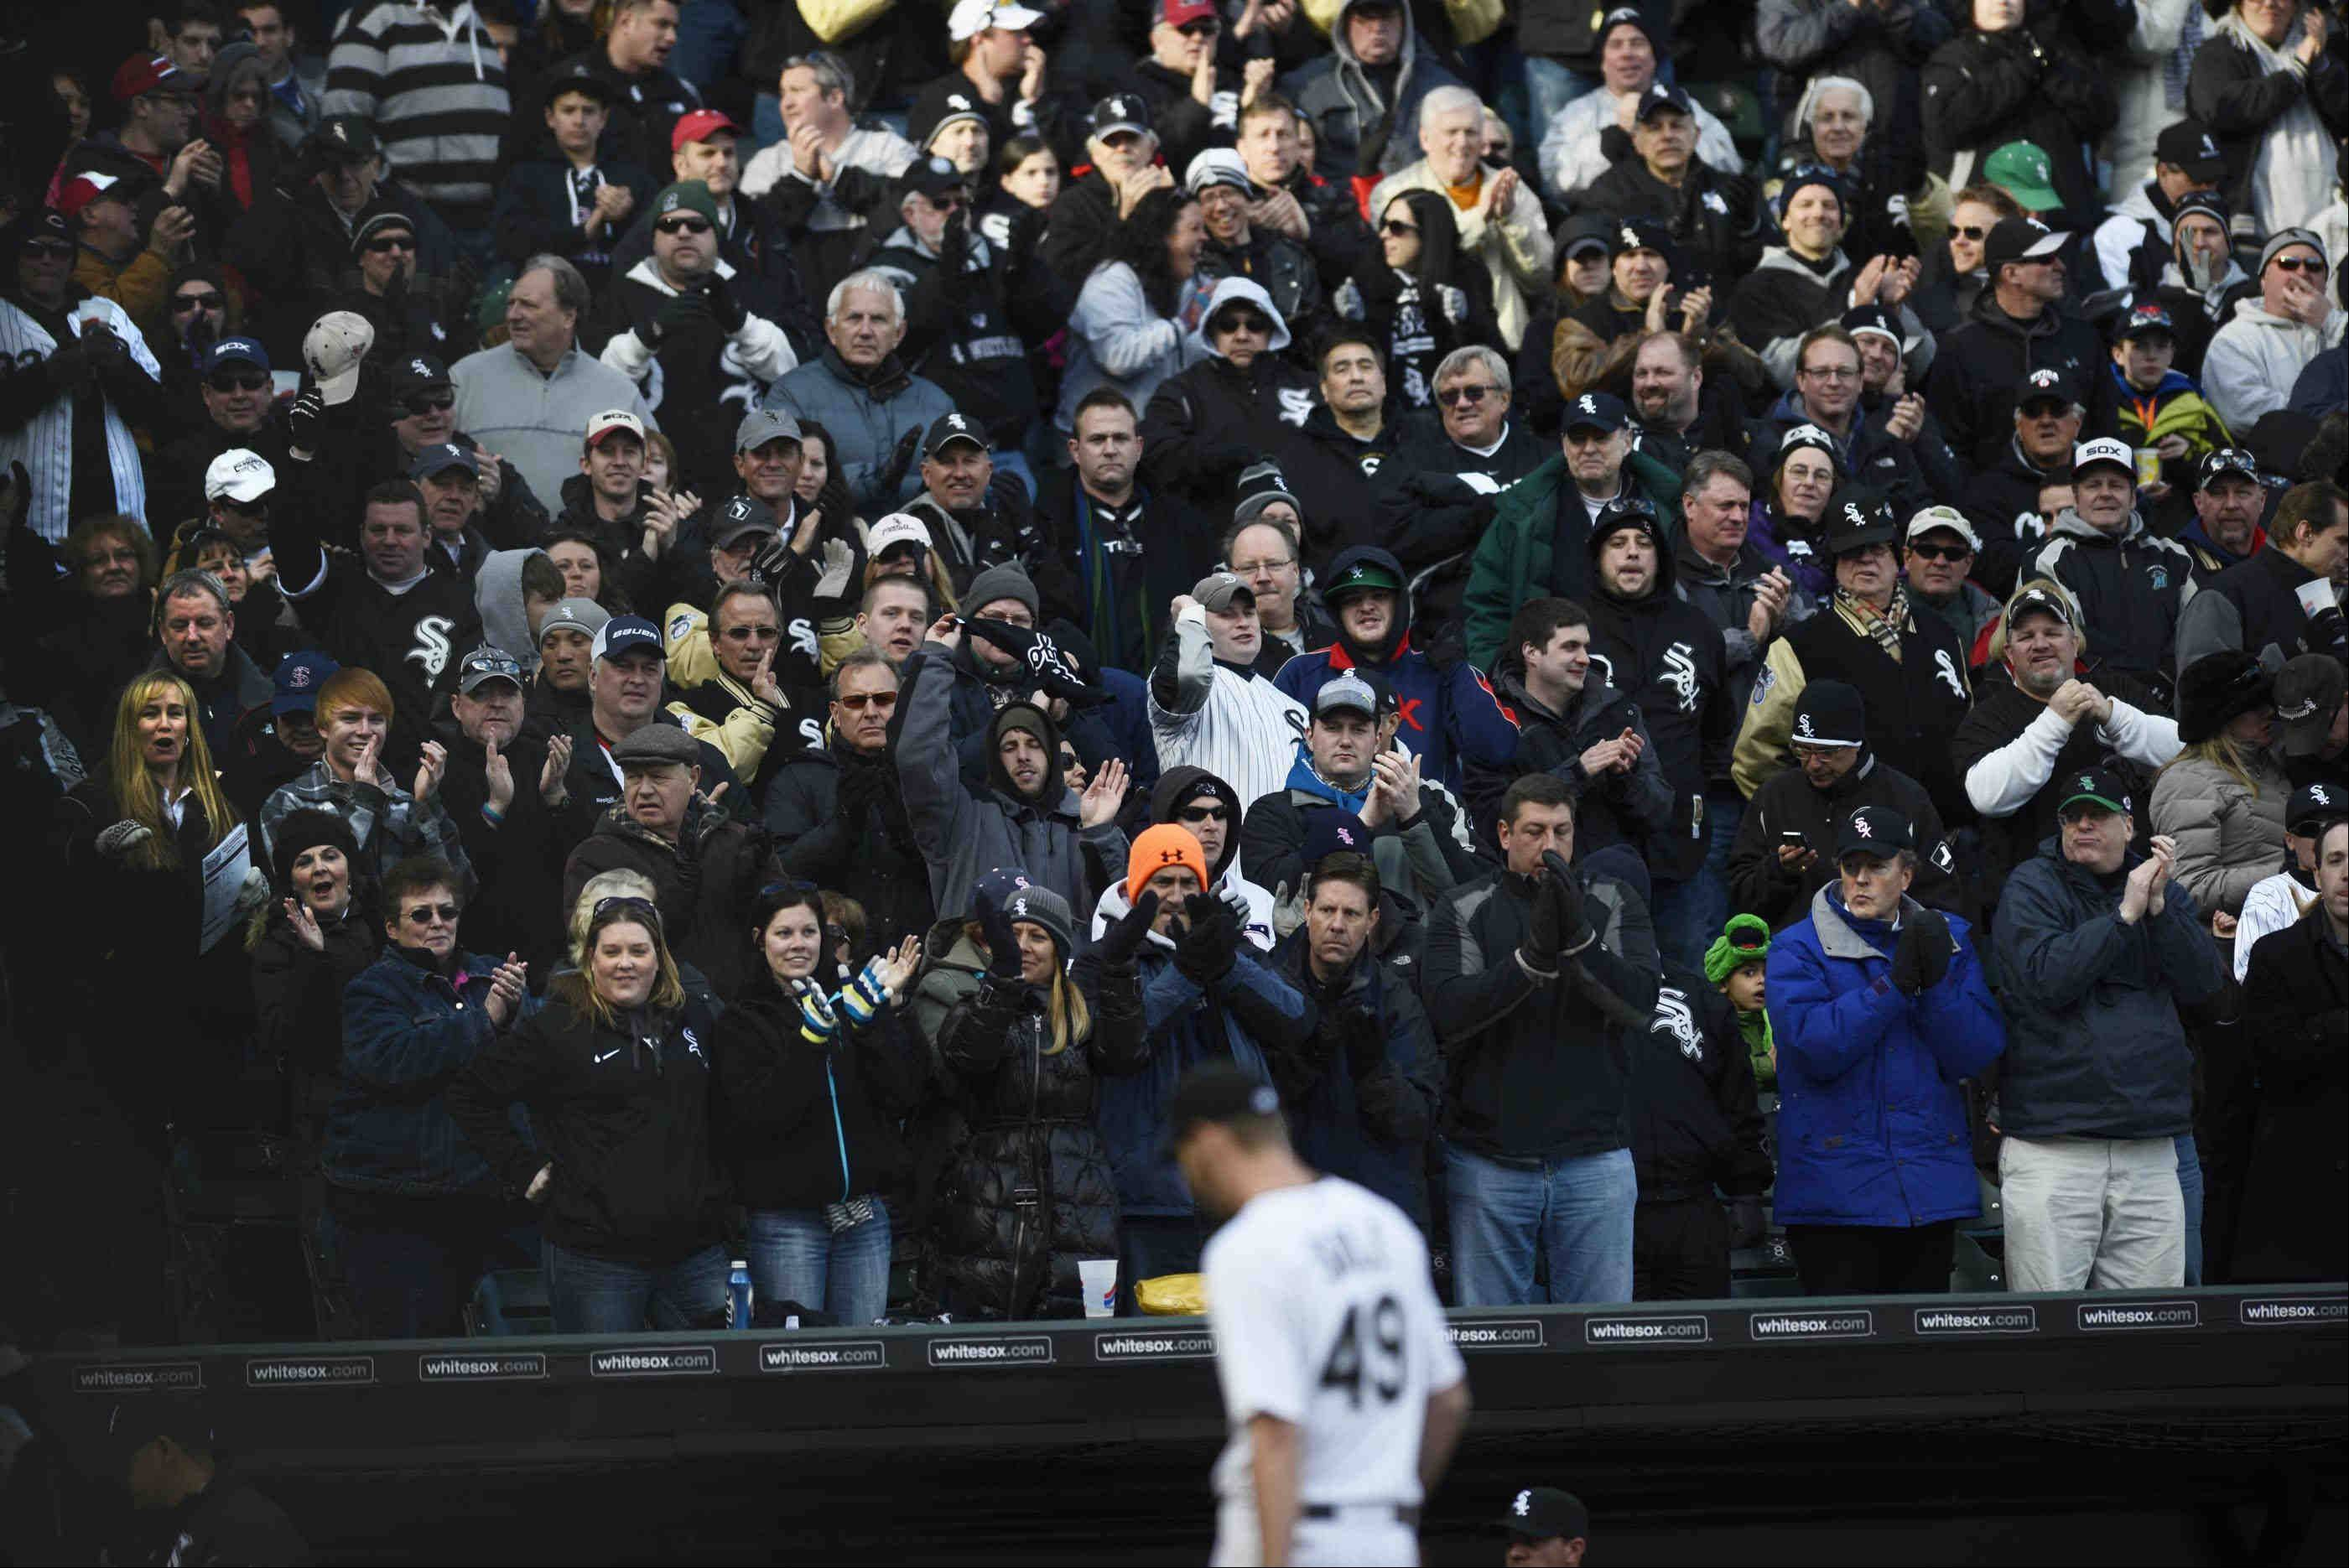 John Starks/jstarks@dailyherald.comThe crowd reacts as Chicago White Sox starting pitcher Chris Sale leaves in the eighth inning with a 1-0 lead against the Kansas City Royals in the 2013 season opener at US Cellular Field in Chicago.